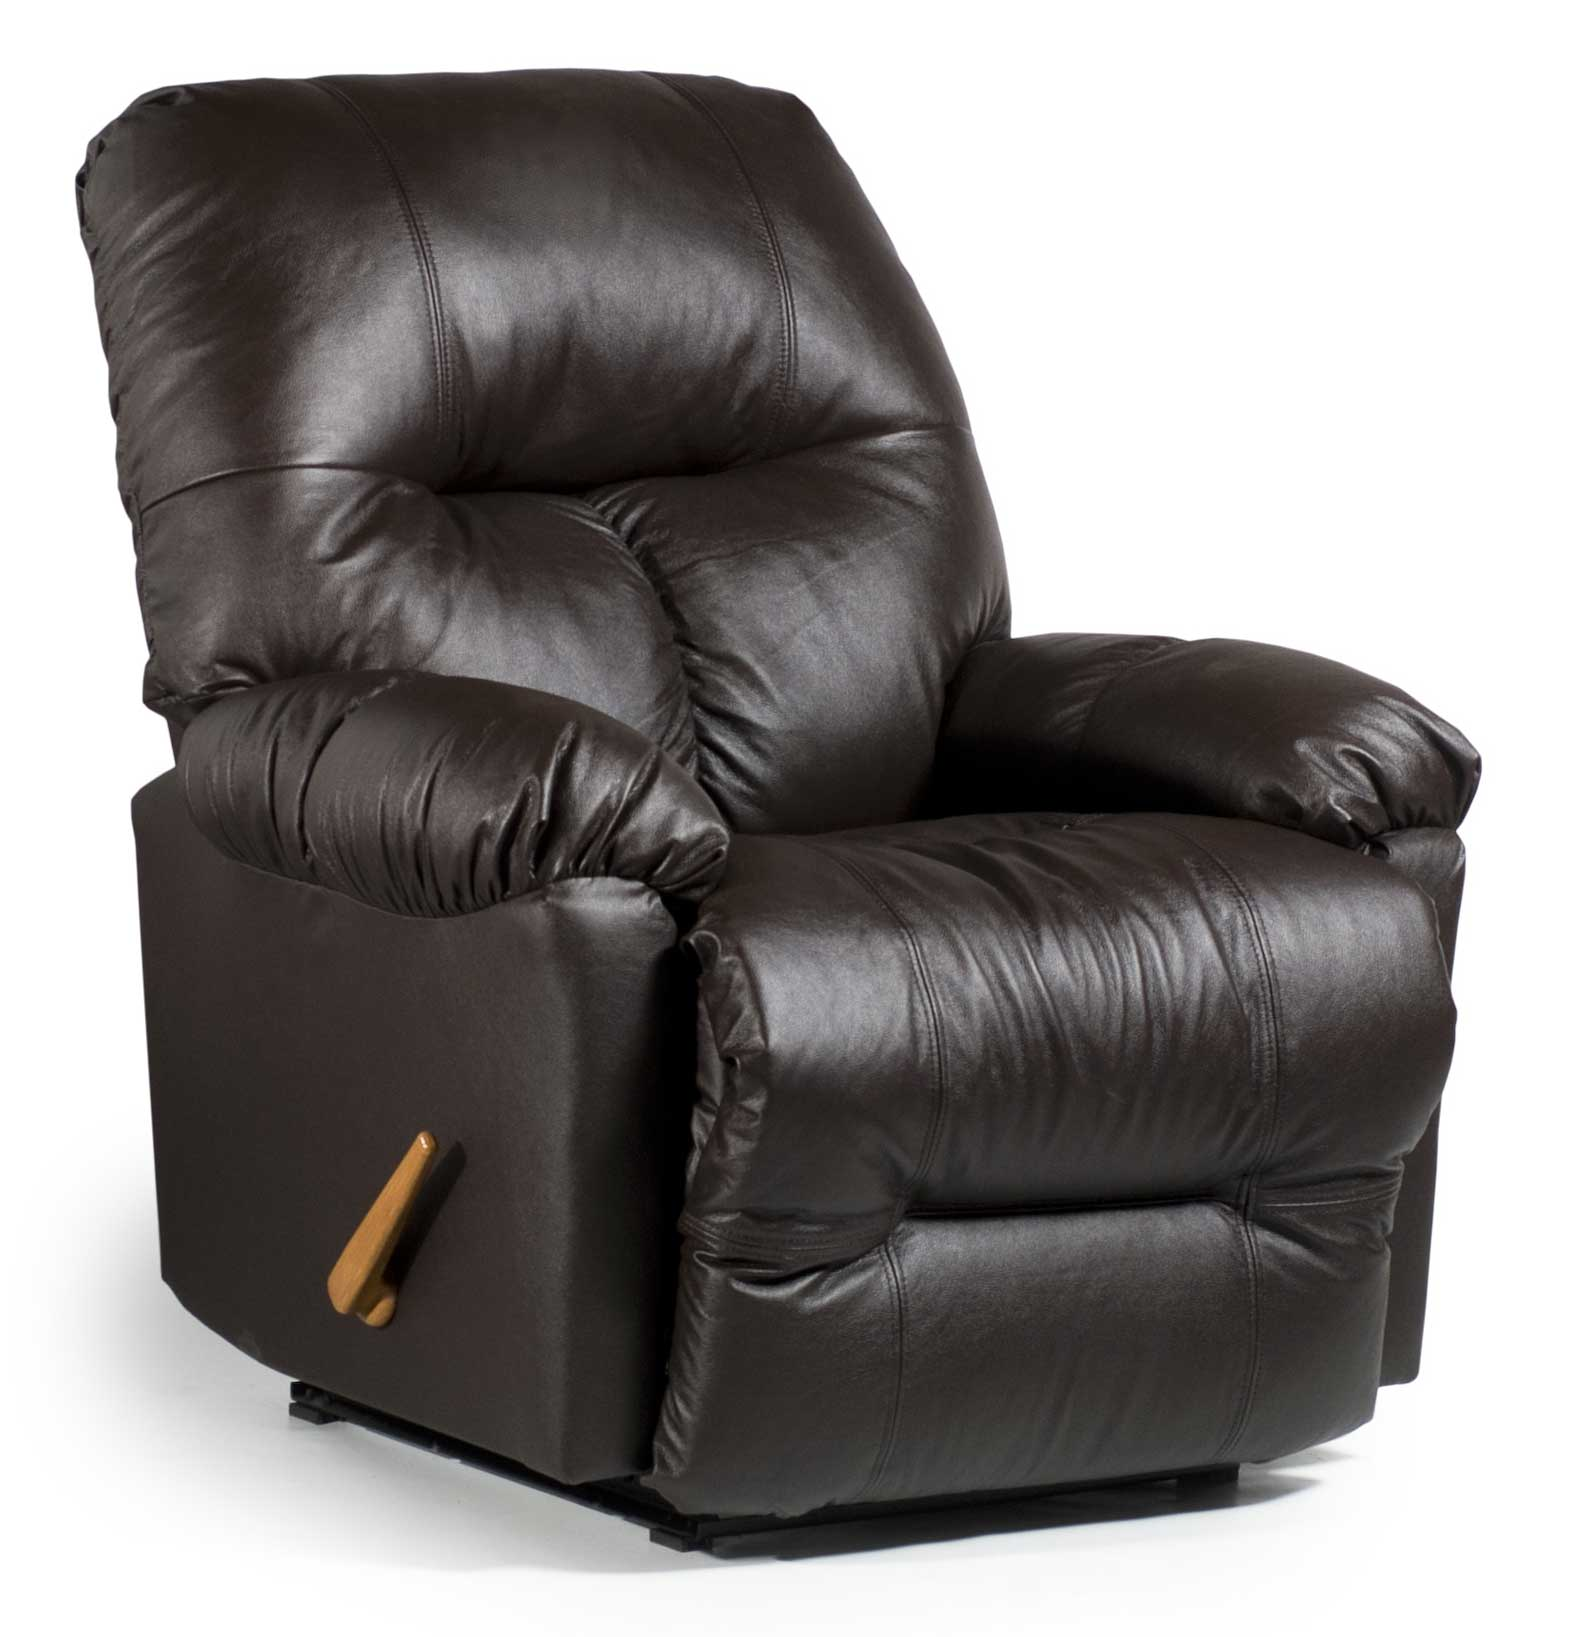 The importance of recliner chairs